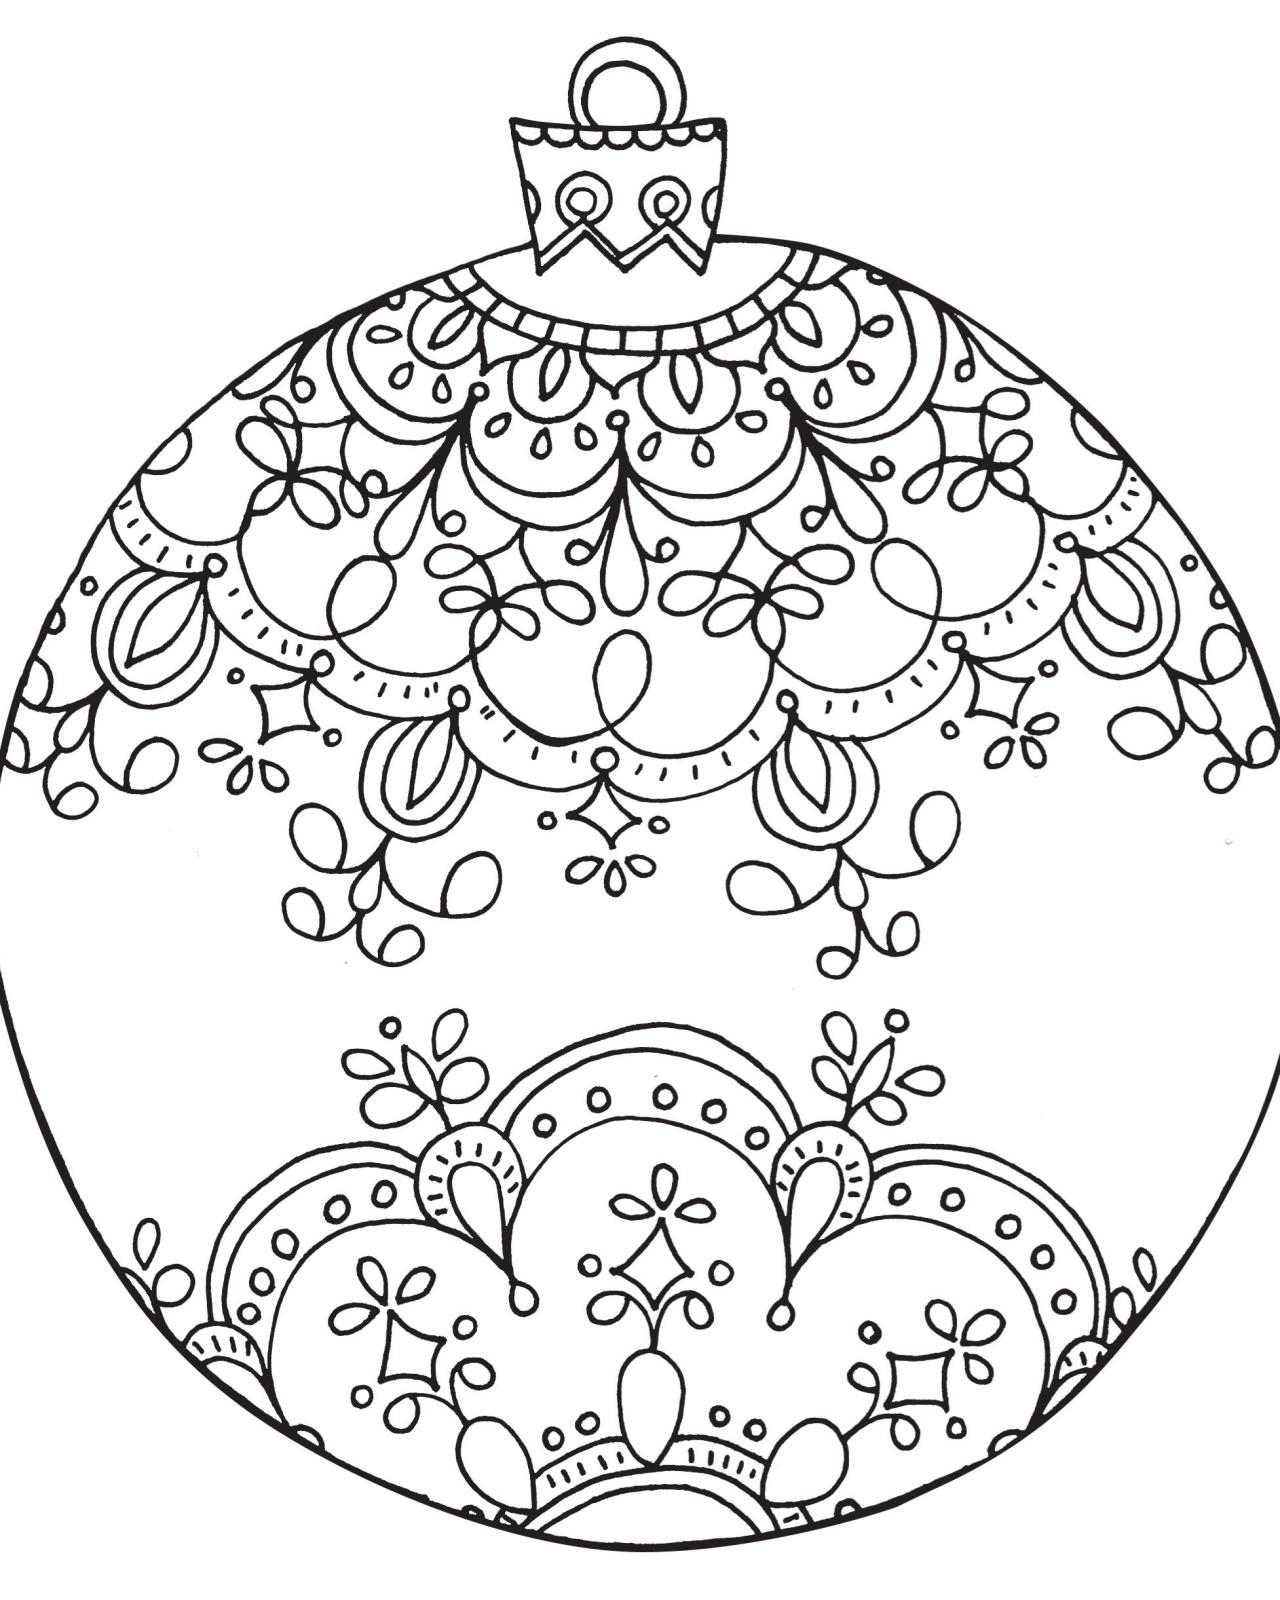 1280x1600 Christmas Ornament Coloring Page Snow Globe Coloring Page